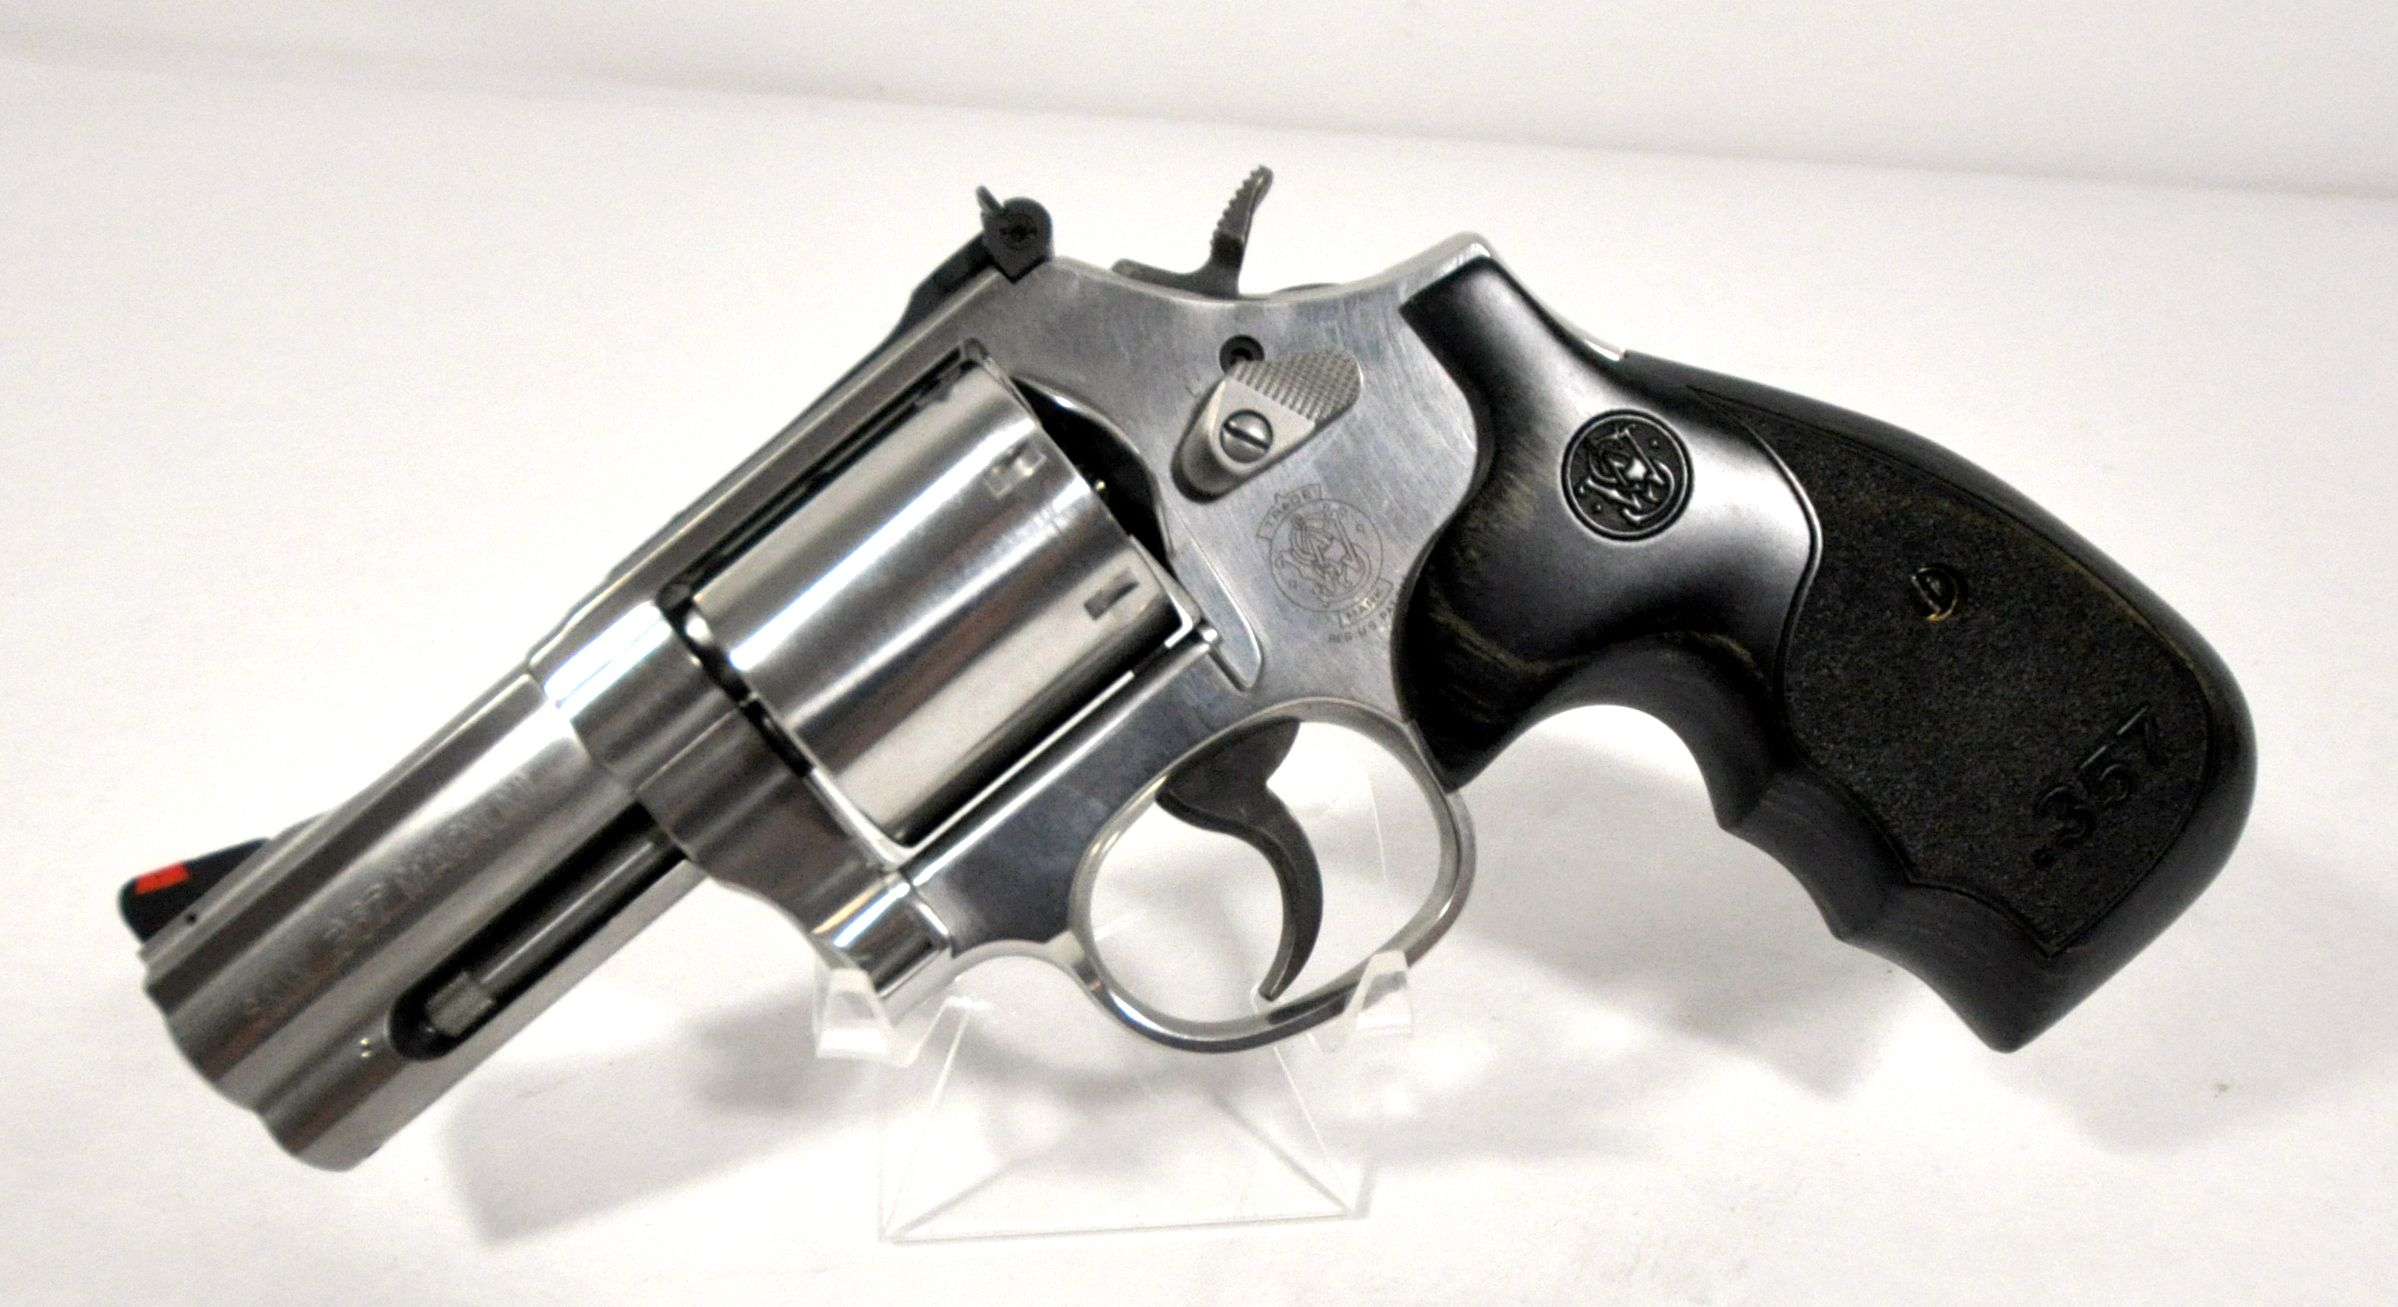 smith wesson model 686 3 5 7 magnum series 357 mag 3 nib s